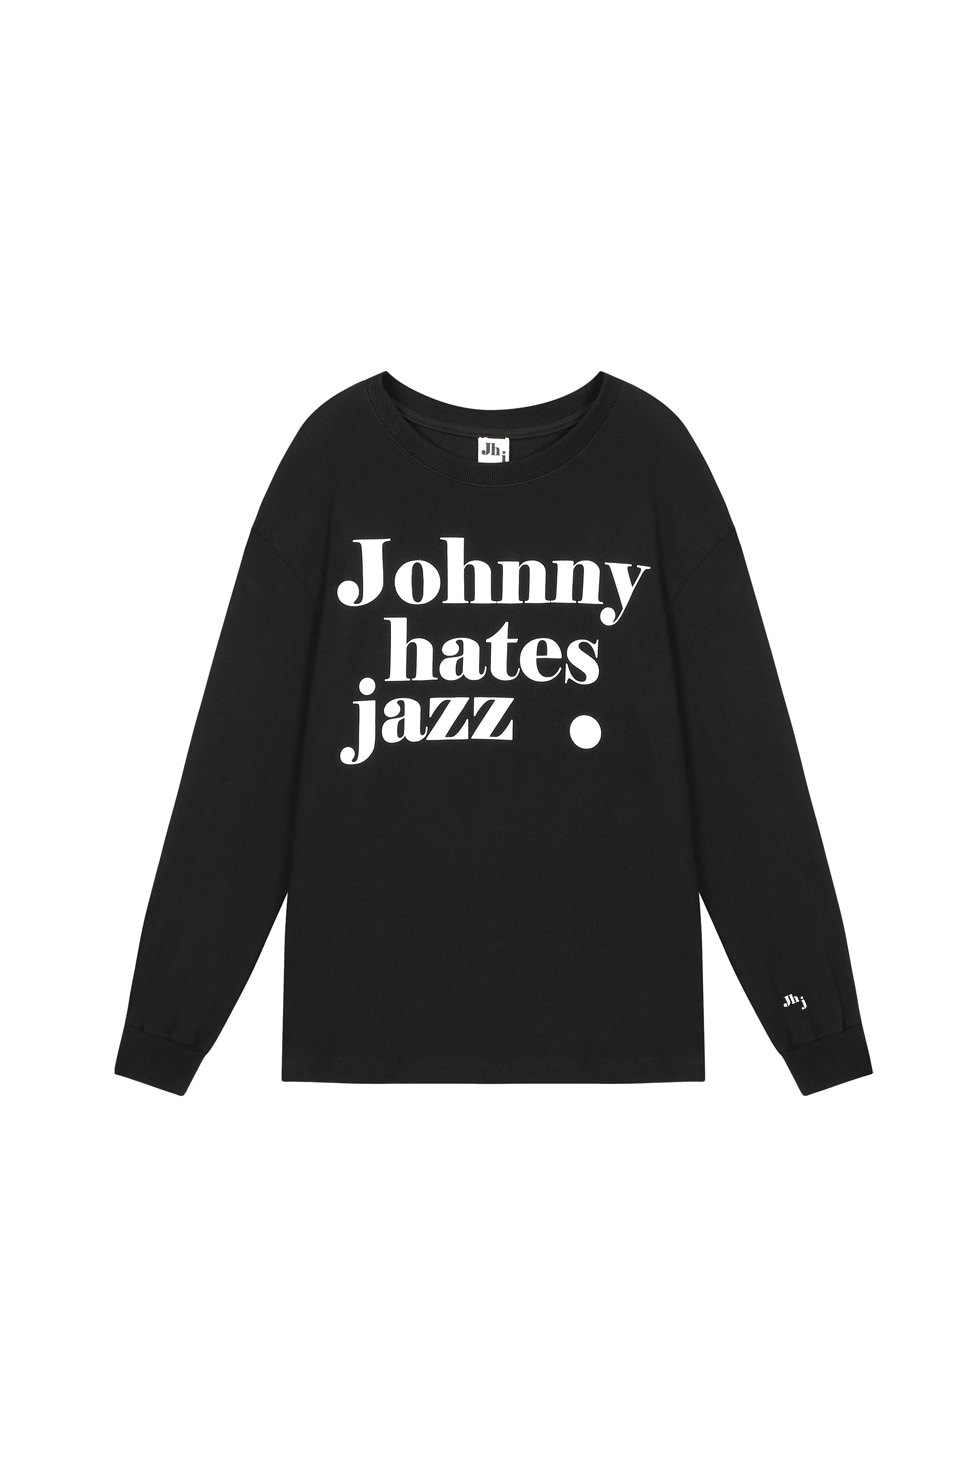 JHZ LONG SLEEVES T-SHIRTS - BLACK